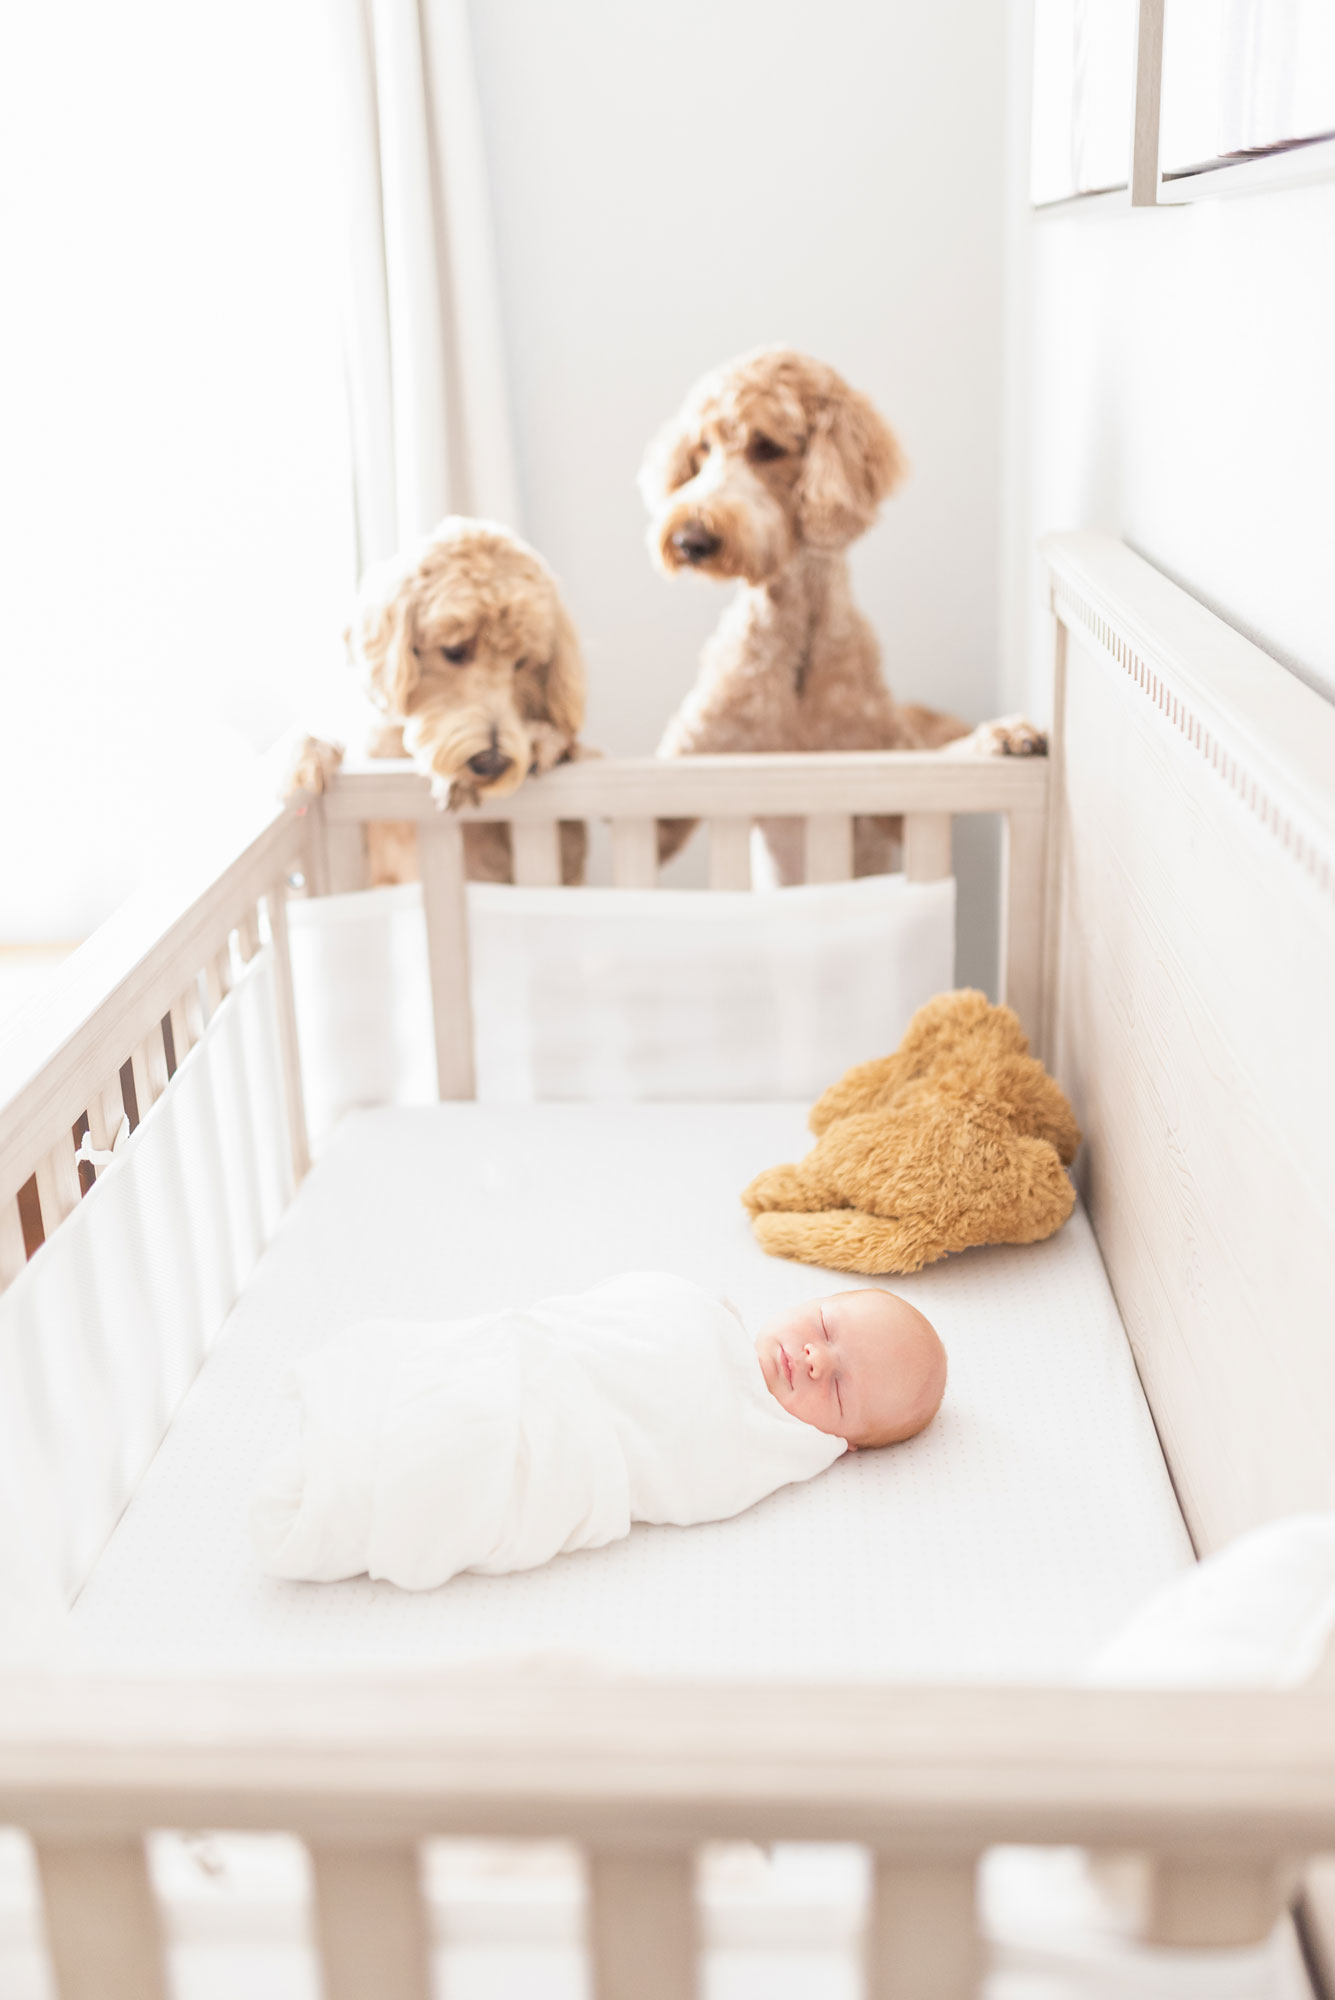 Puppies look in on new baby in crib